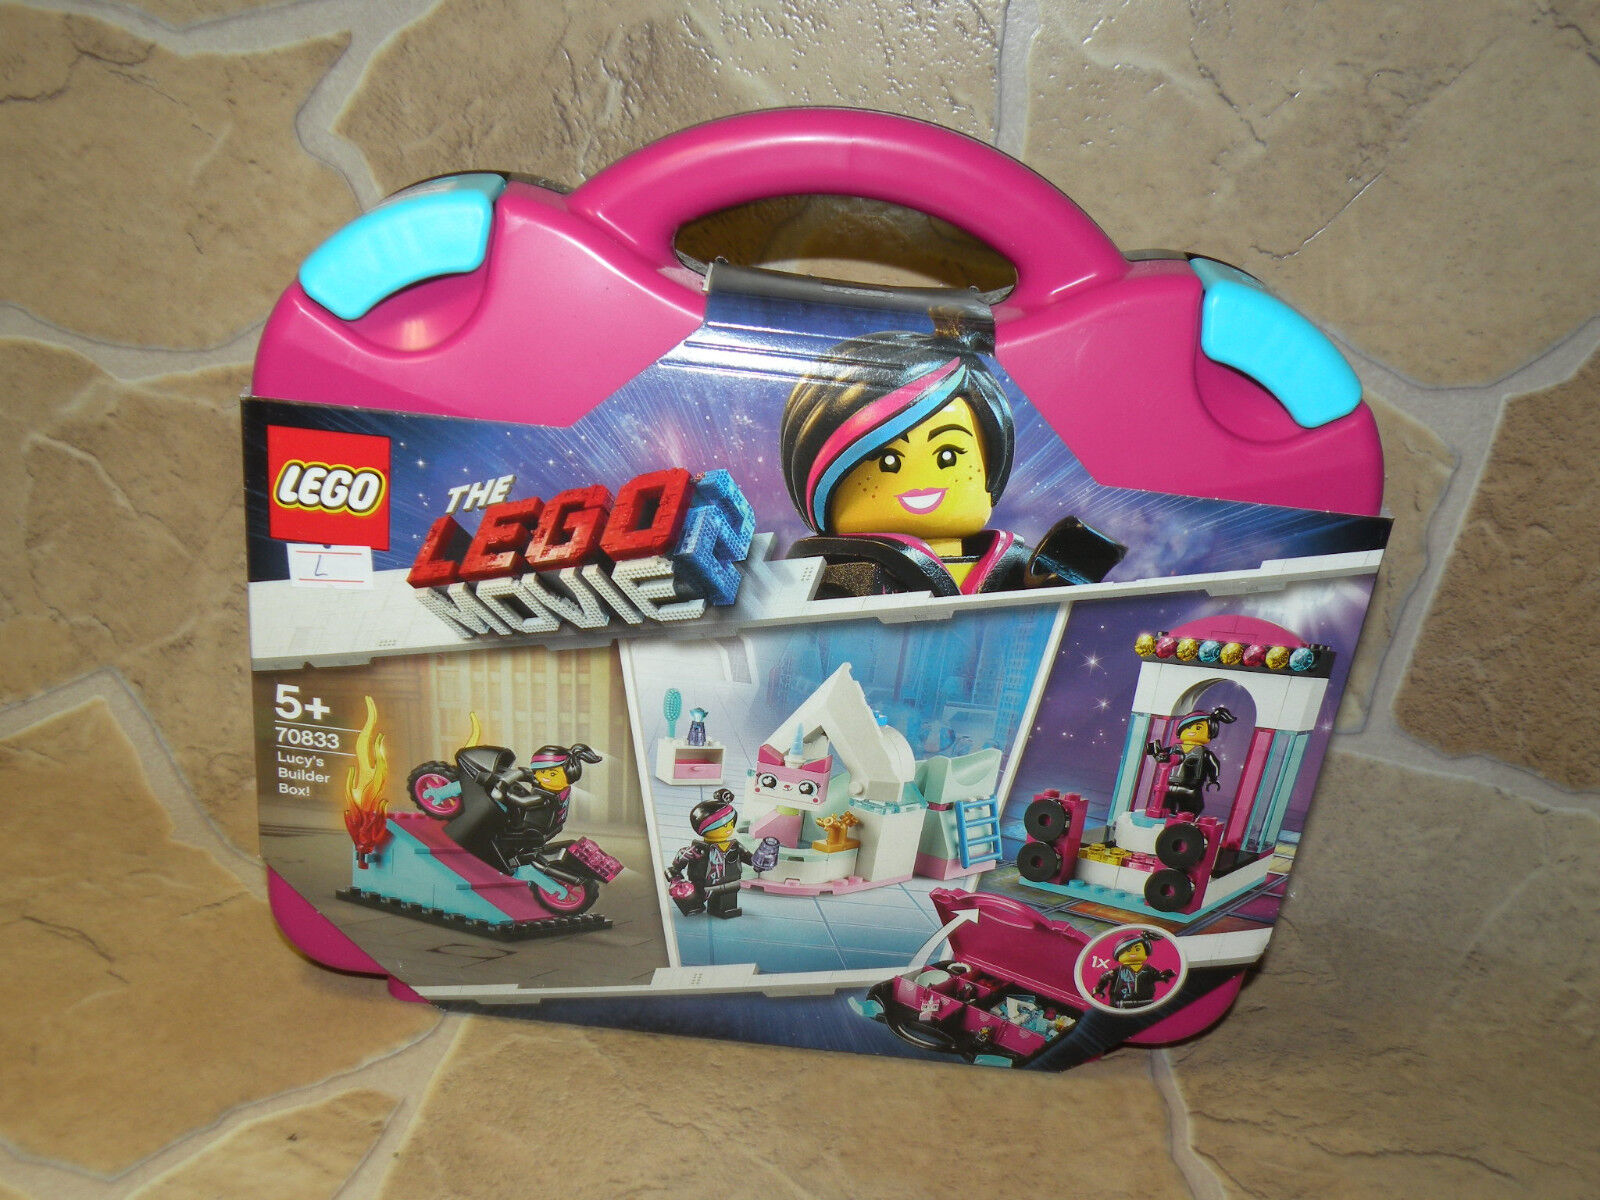 Lego The Lego Movie 2 70833